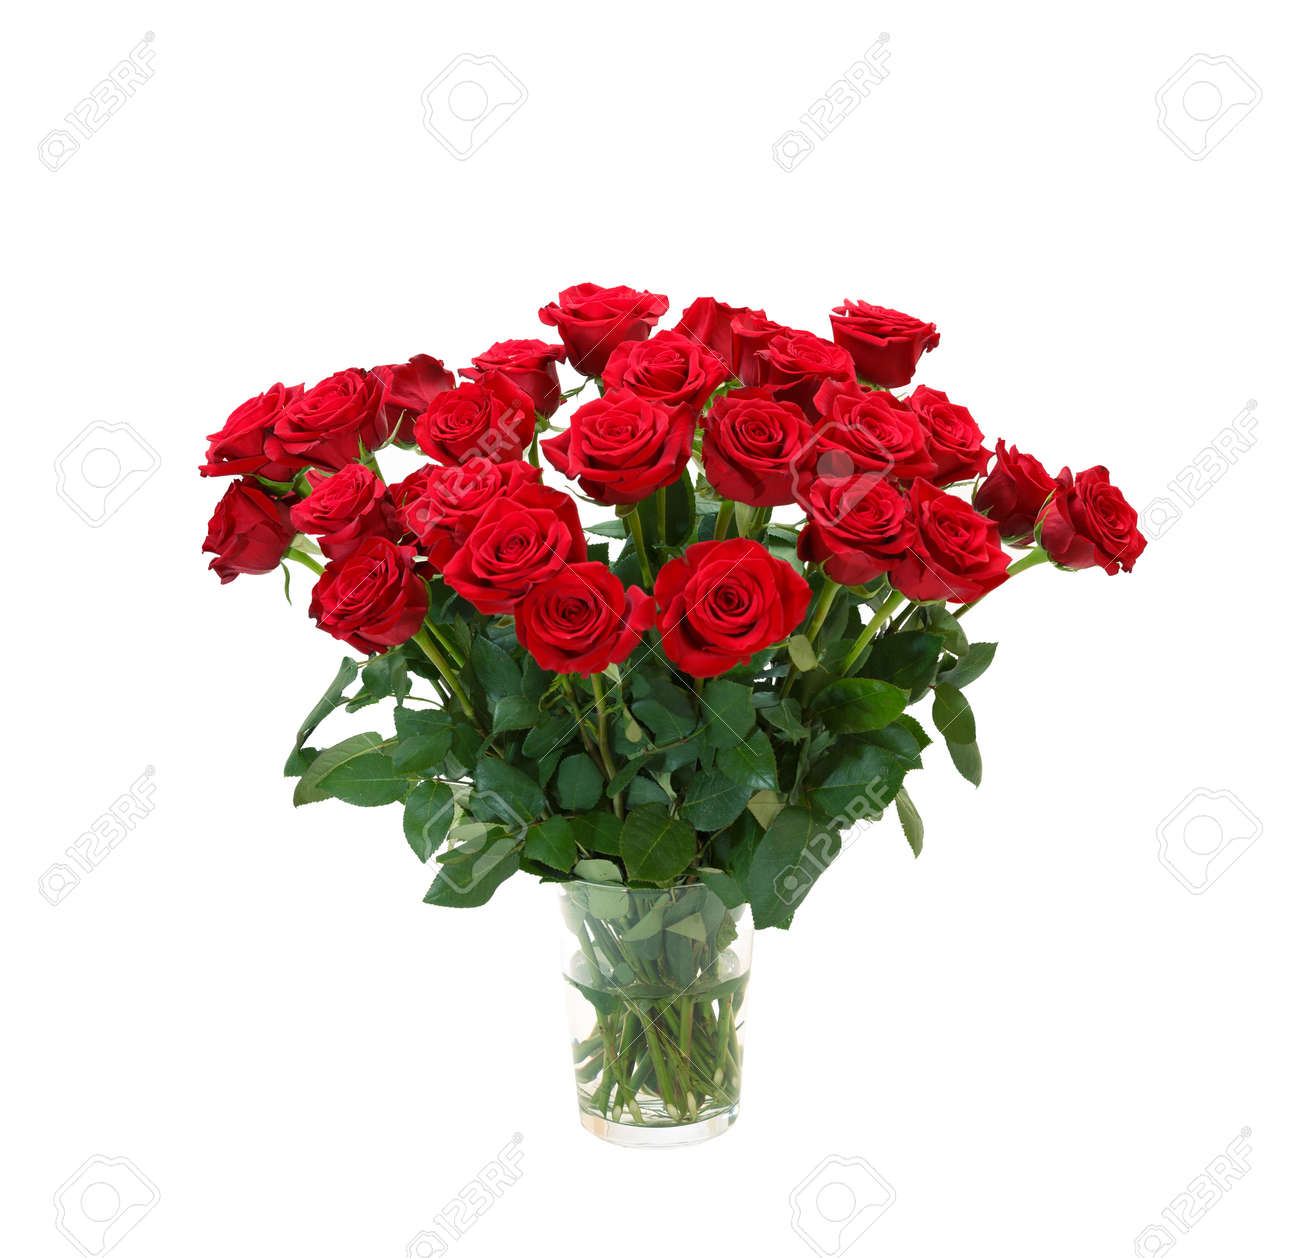 bouquet of blossoming dark red roses in vase isolated on white background - 169821300